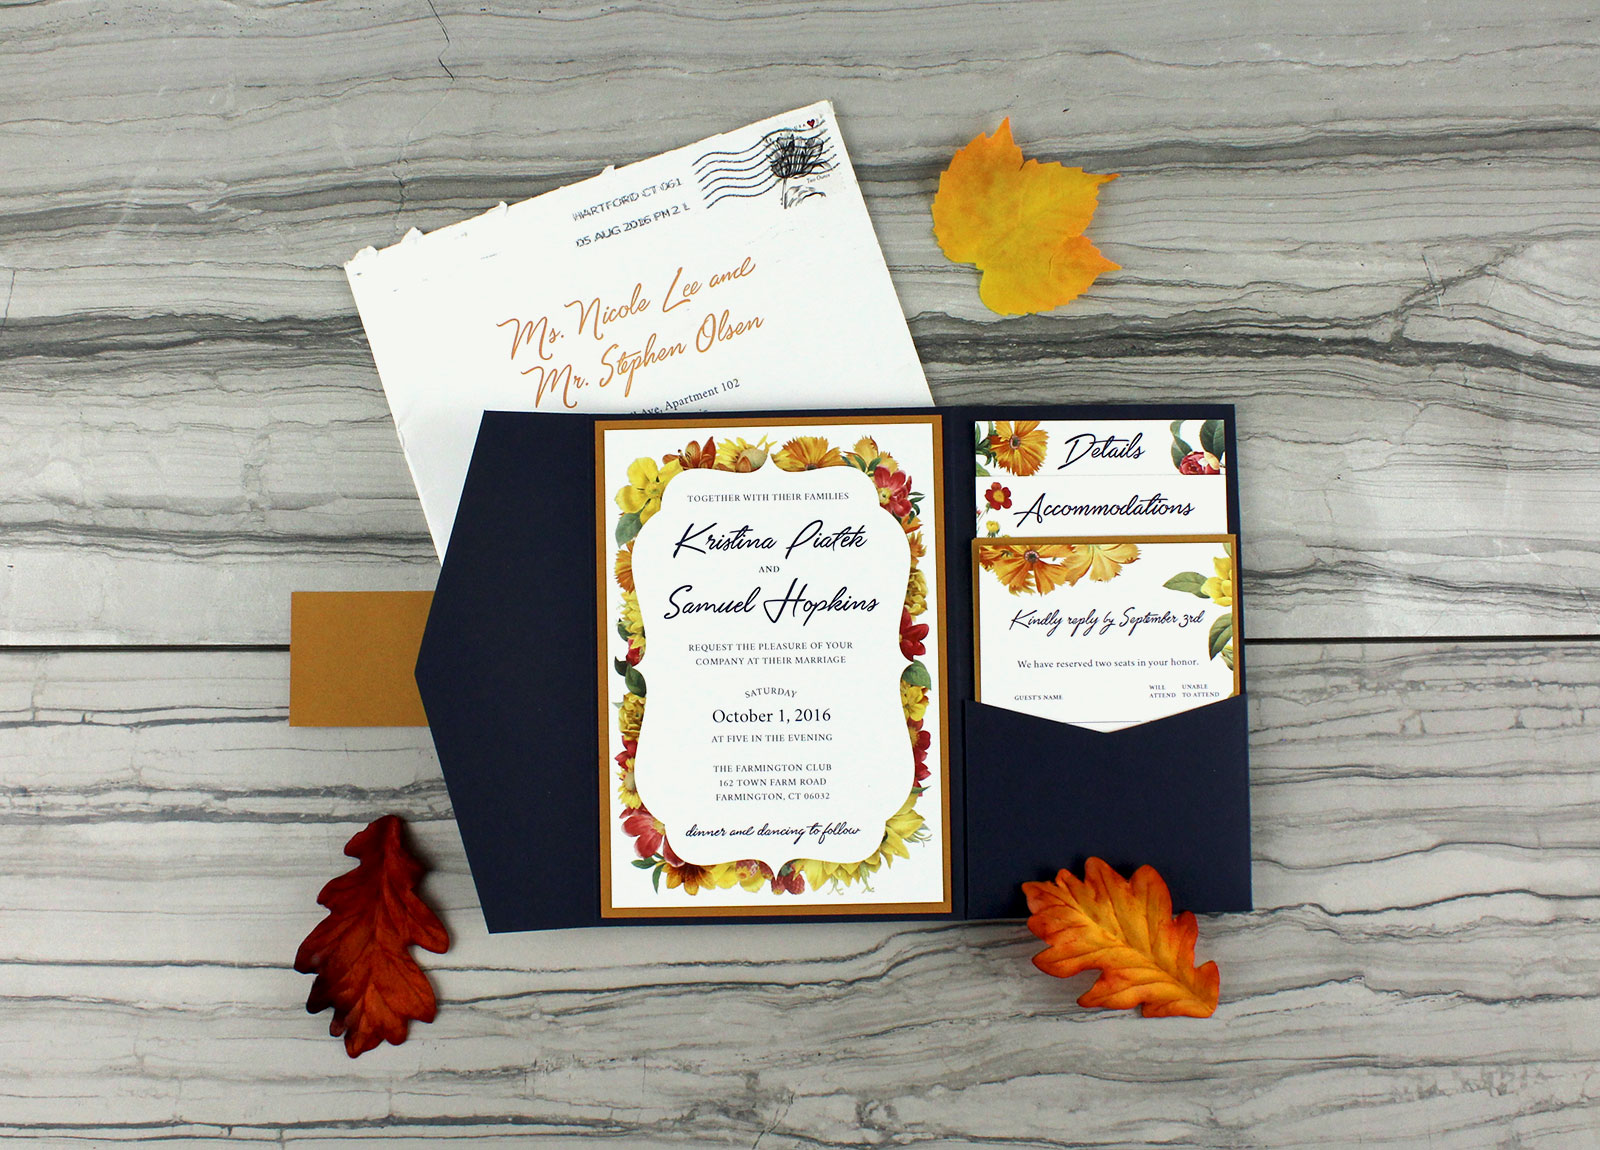 Kristina and Samuel's wedding invitations